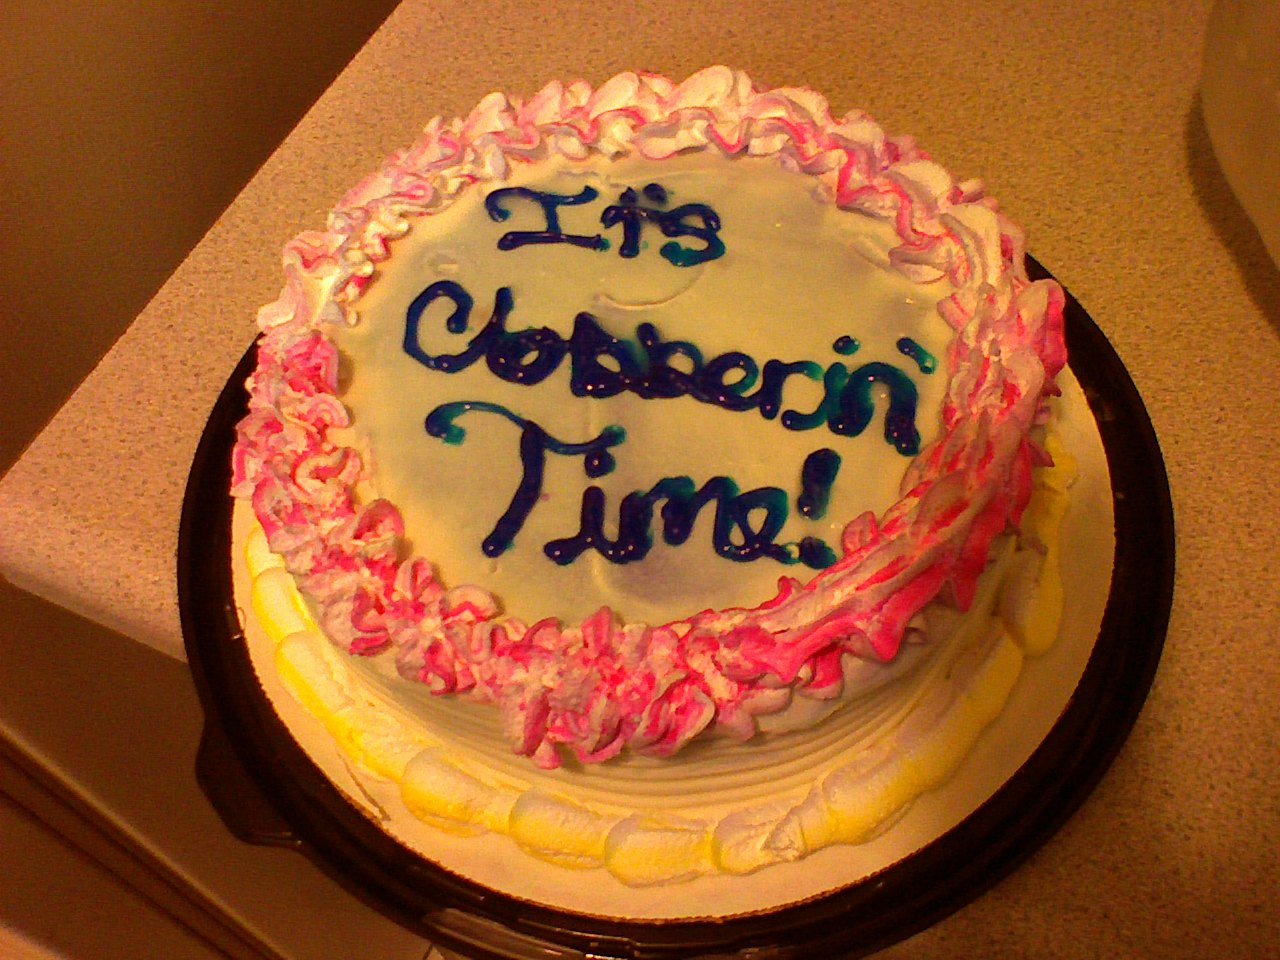 Cake Designs At Dairy Queen : Dairy Queen Ice Cream Cake Designs